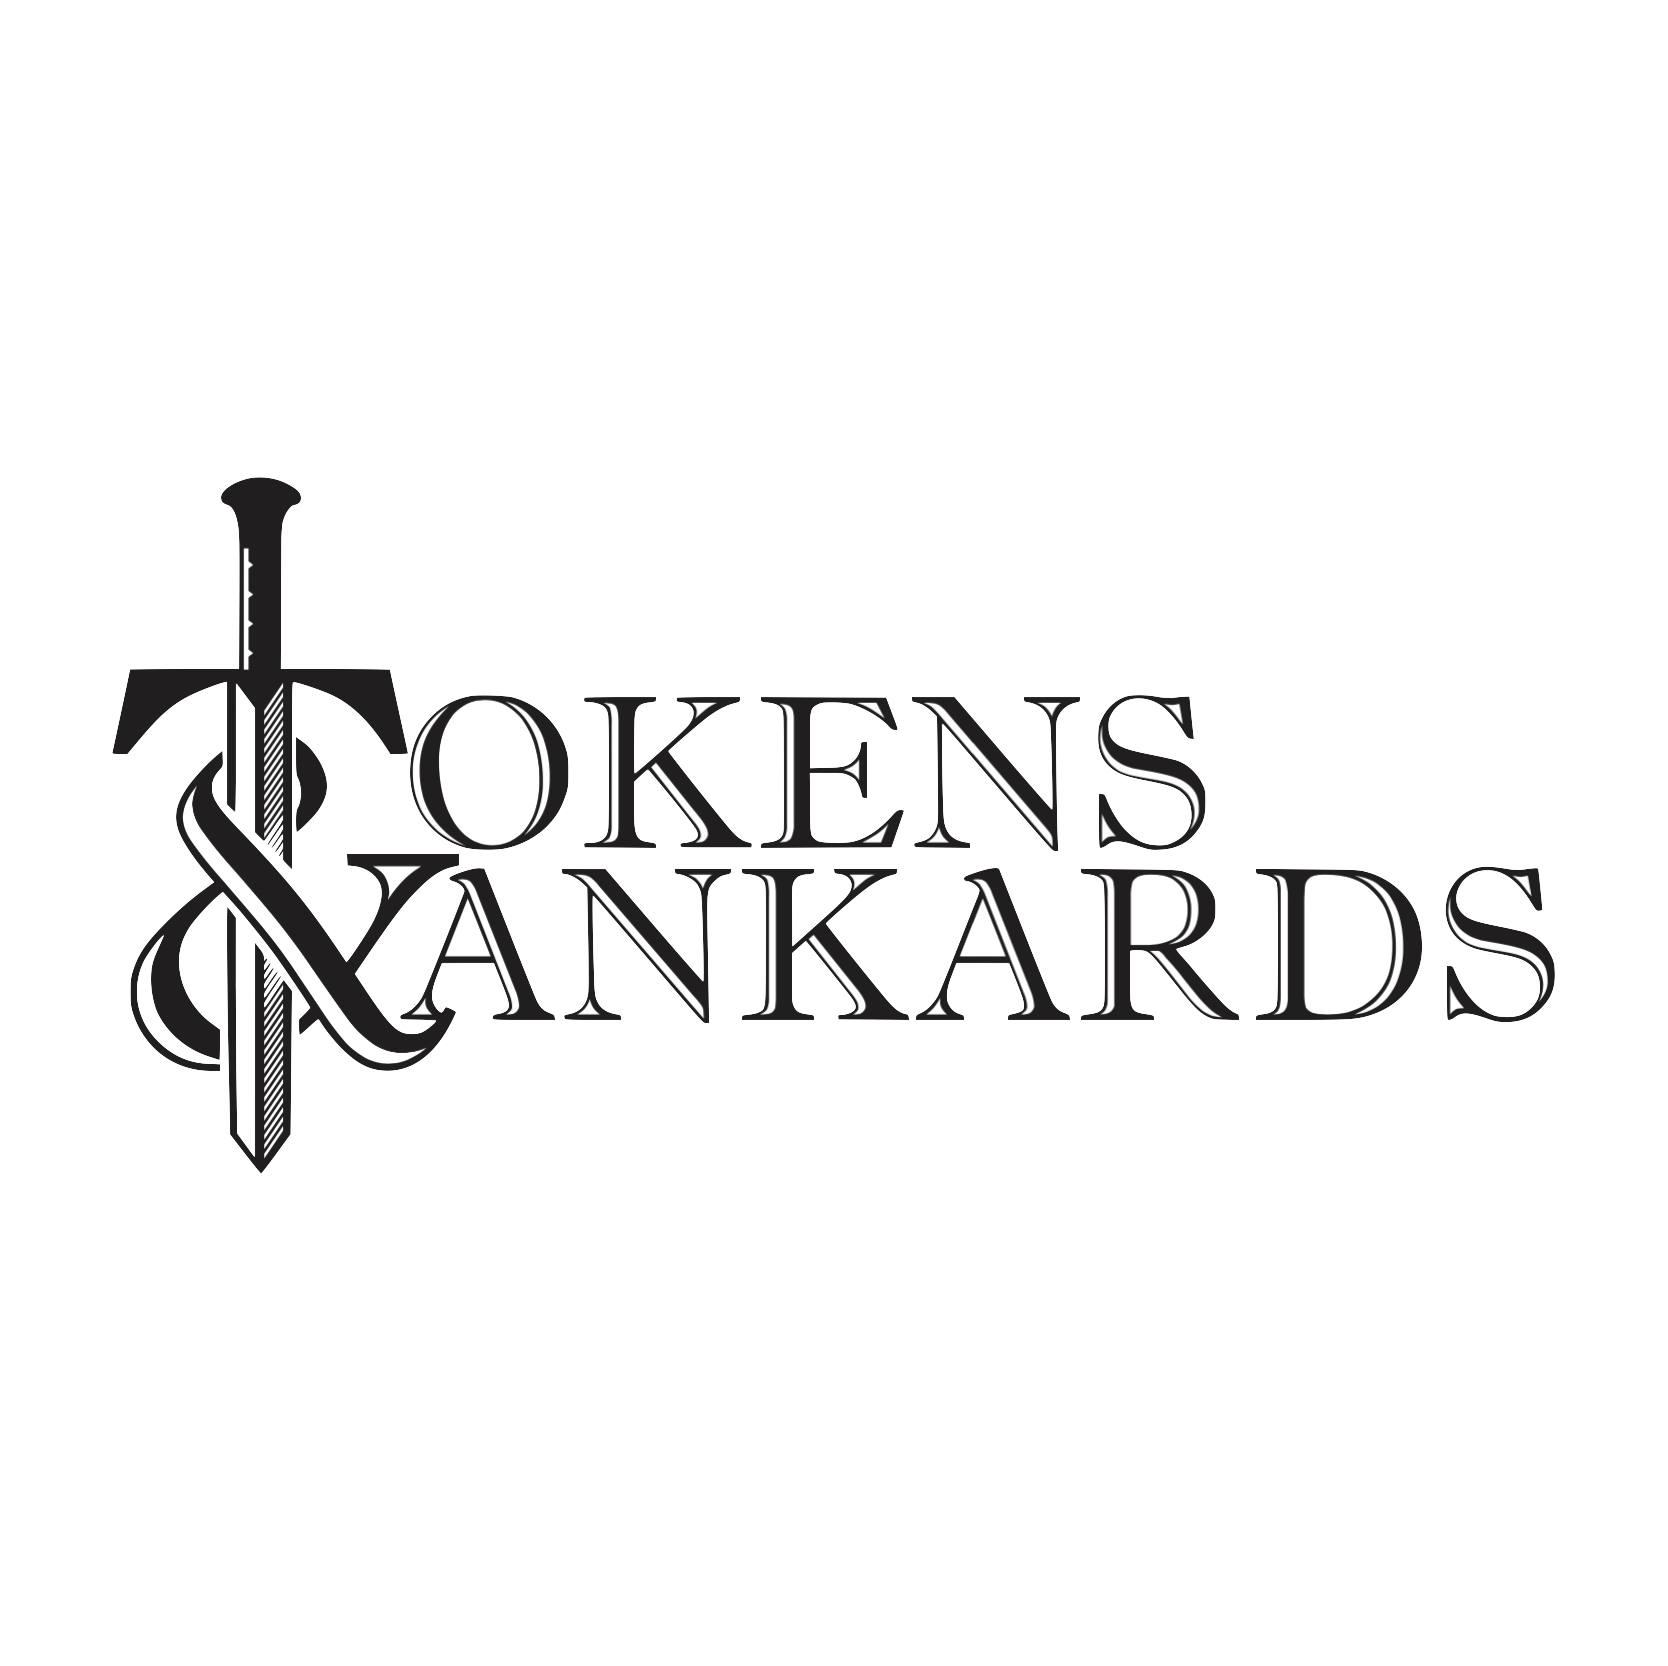 Tokens & Tankards